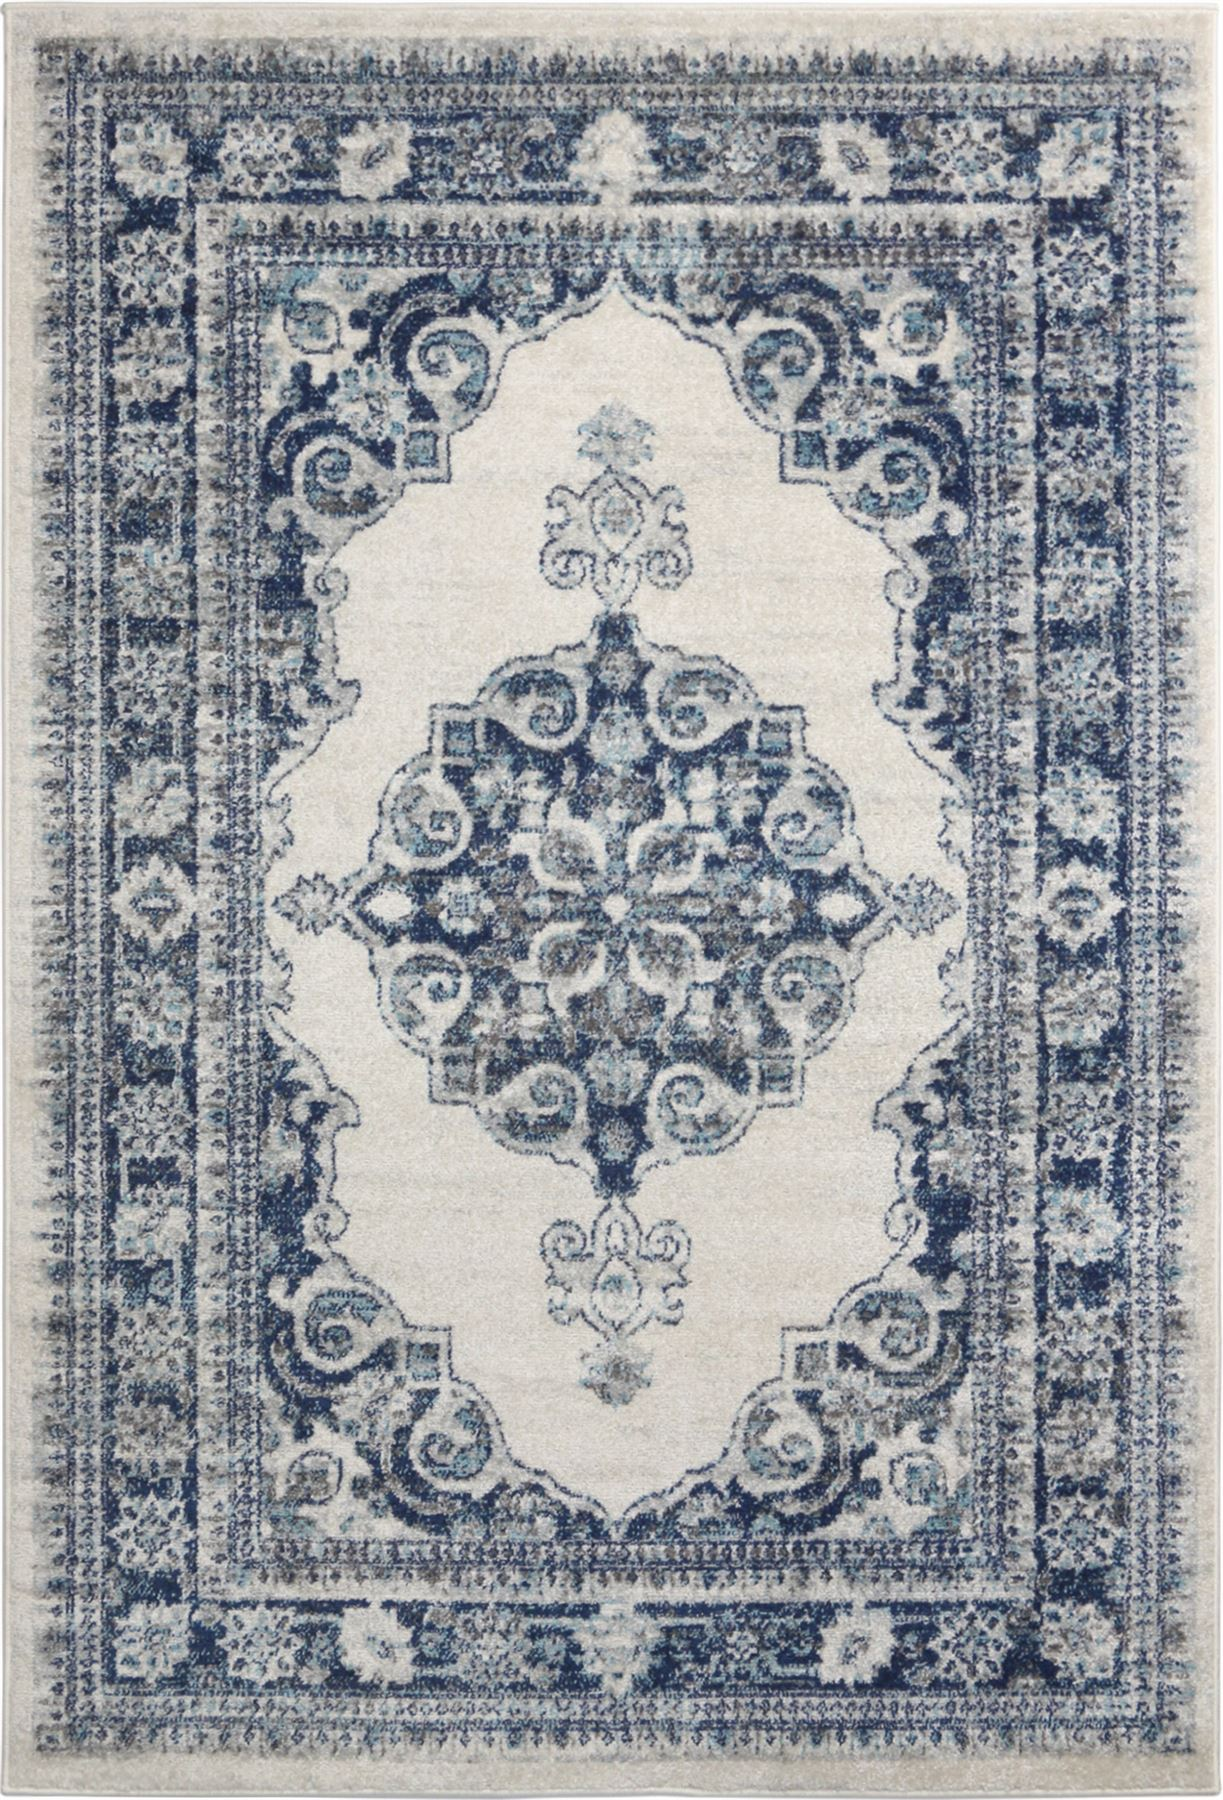 Large-Quality-Traditional-Area-Rug-Assorted-Persian-Floral-Designs-Carpet-Runner thumbnail 43